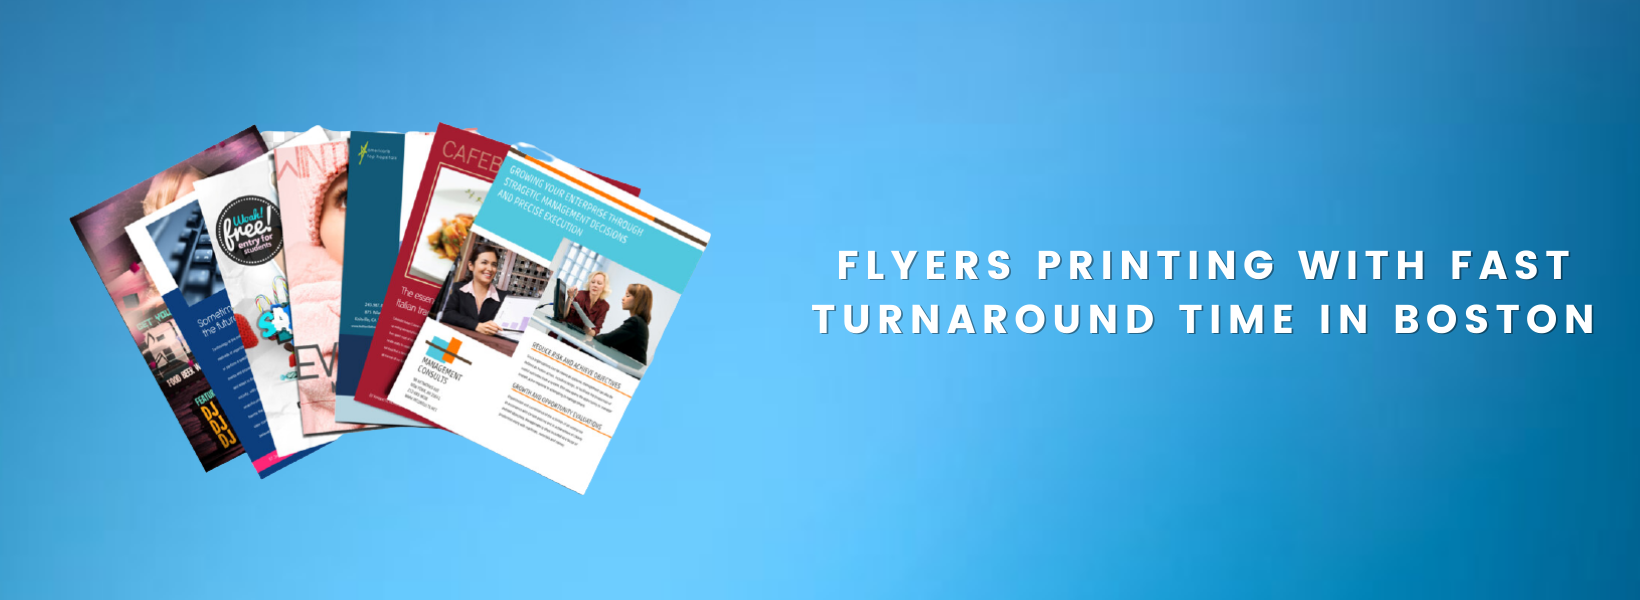 Flyers Printing with Fast Turnaround Time in Boston